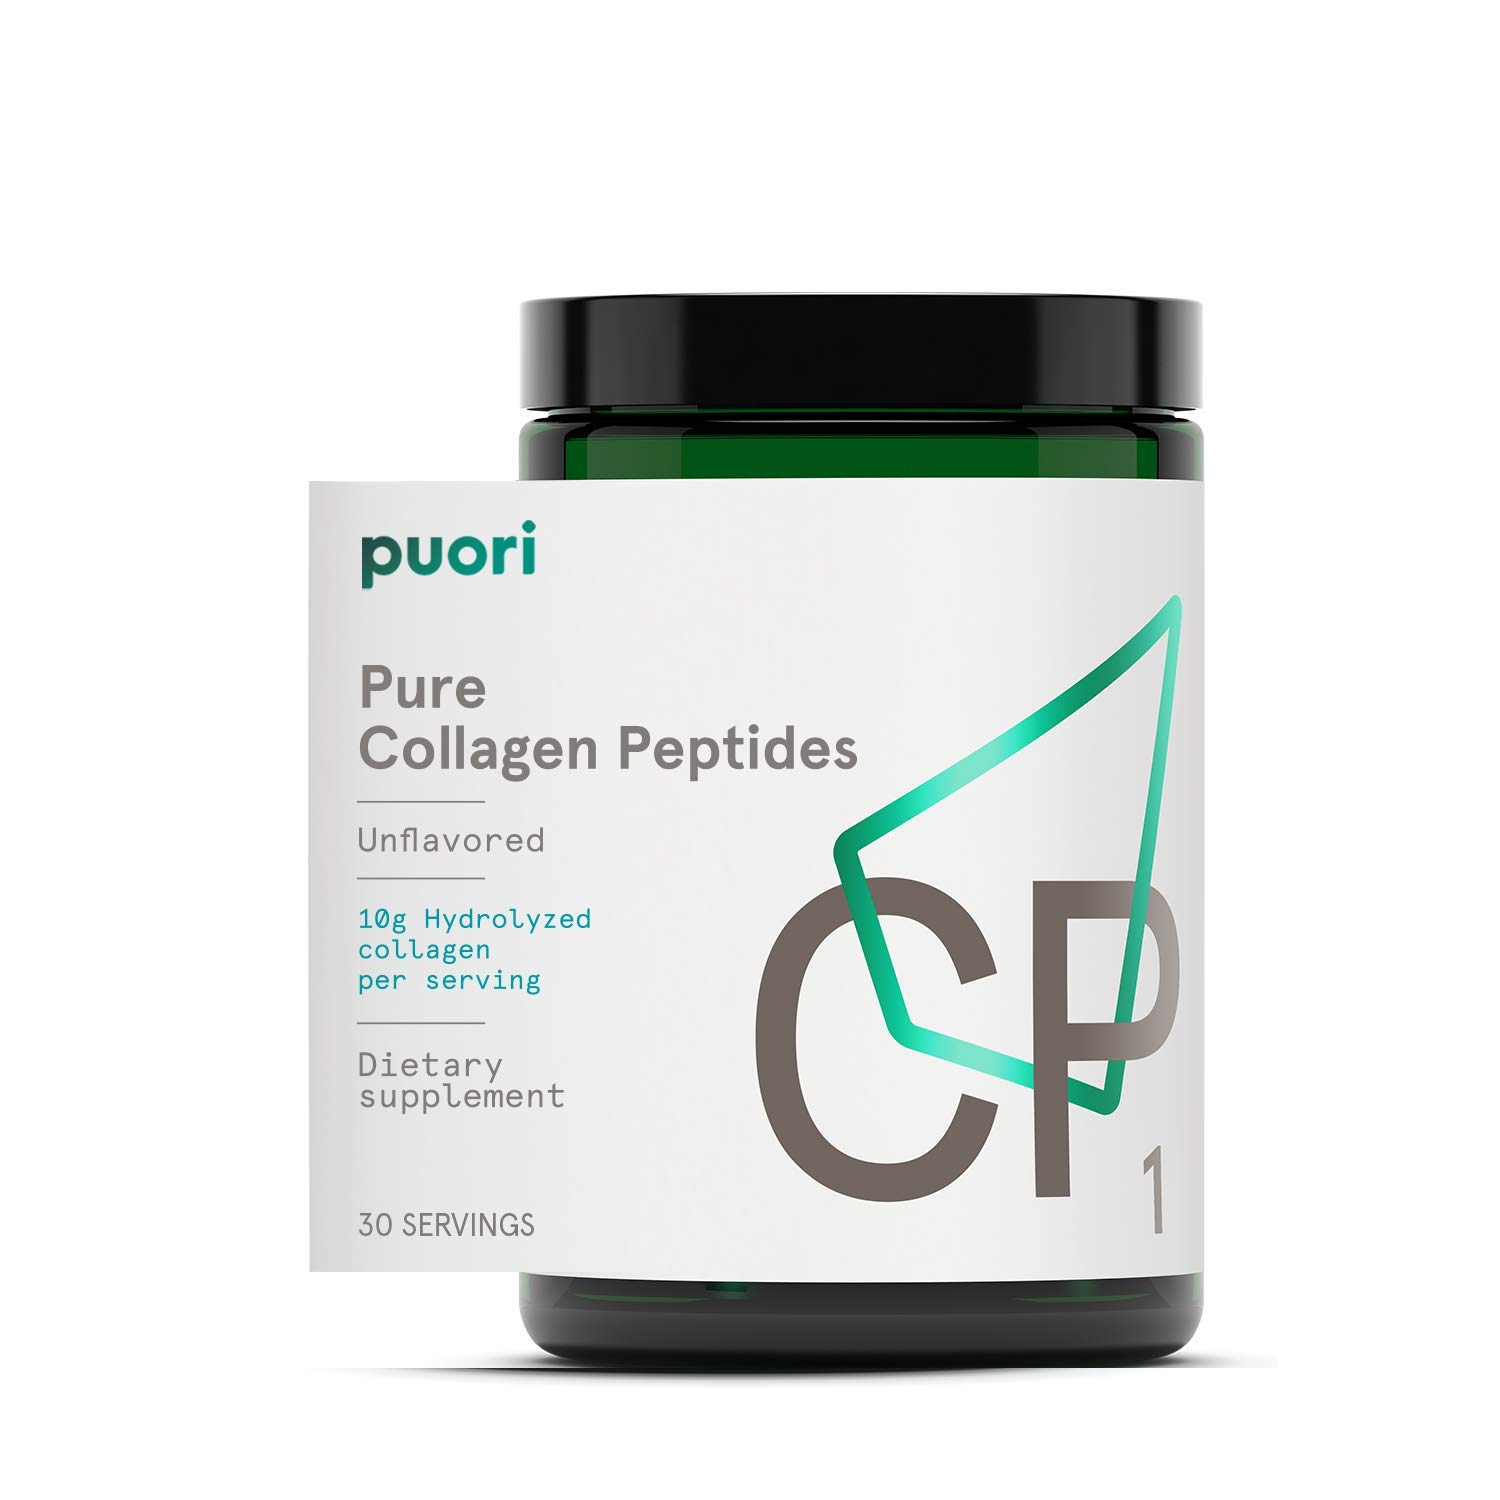 Puori - CP1 Pure Collagen Peptides Powder - Hair, Skin, Nails - Joint, Bones Support - Hydrolyzed Protein, Unflavored, 30 Servings